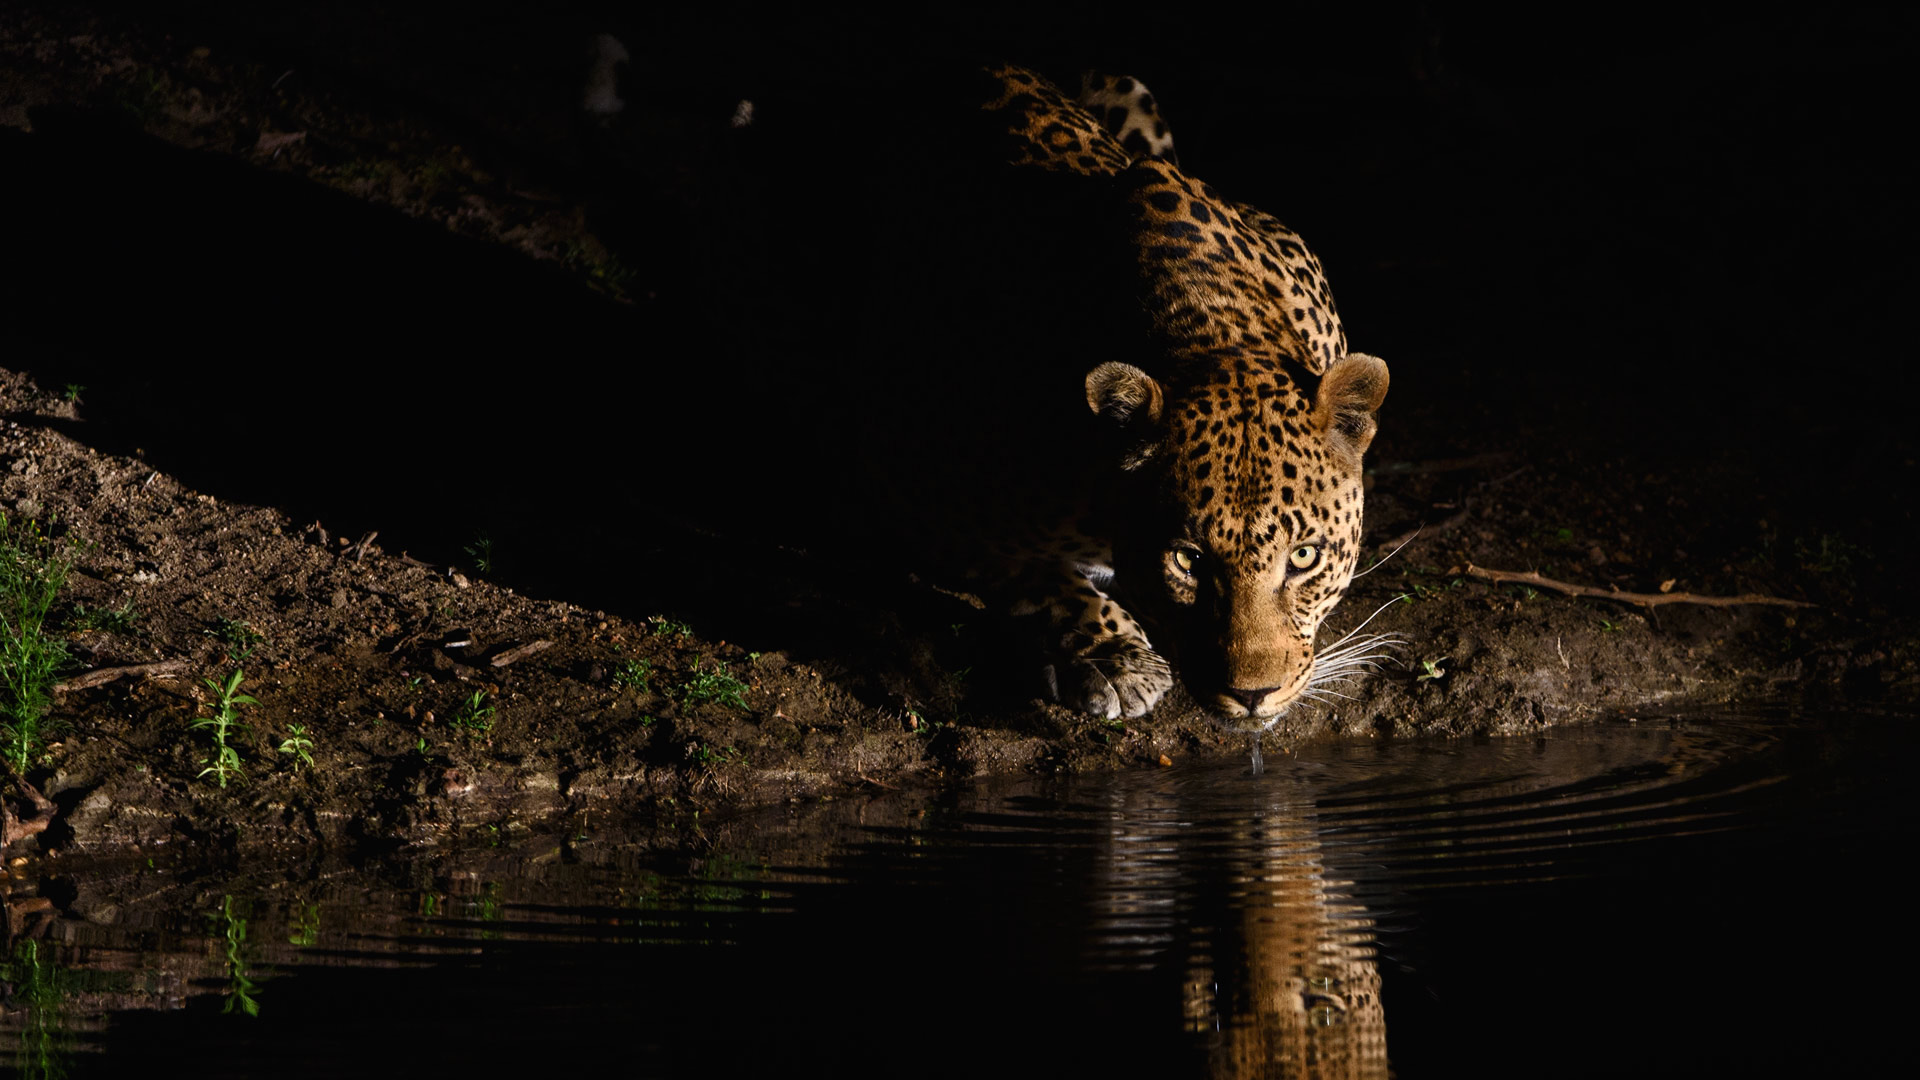 Night Leopard